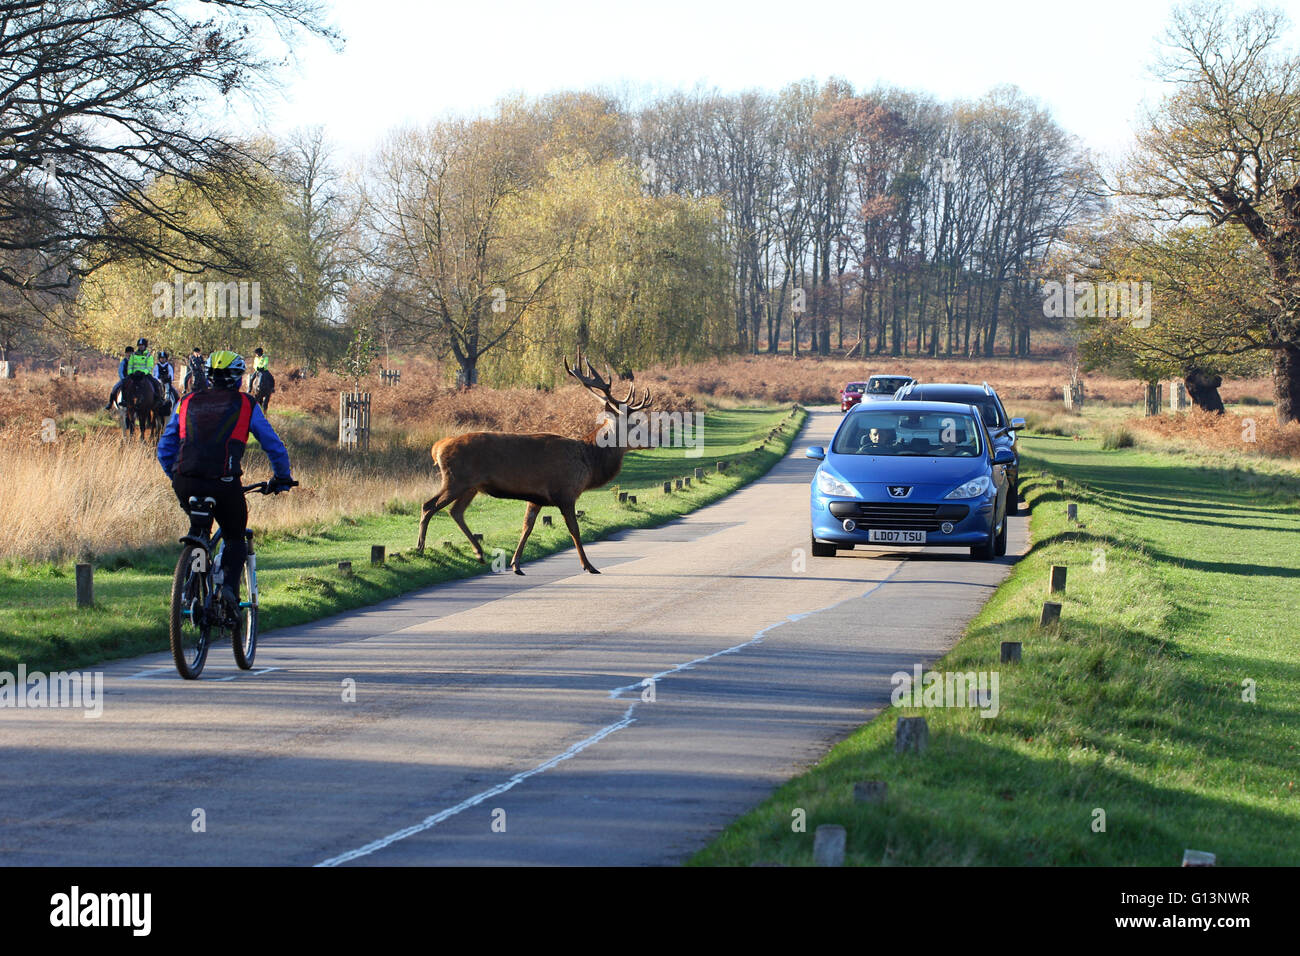 A male Red deer (Cervus Elaphus) crossing the road in front of cars and bicycle traffic in Richmond Park, London. Stock Photo